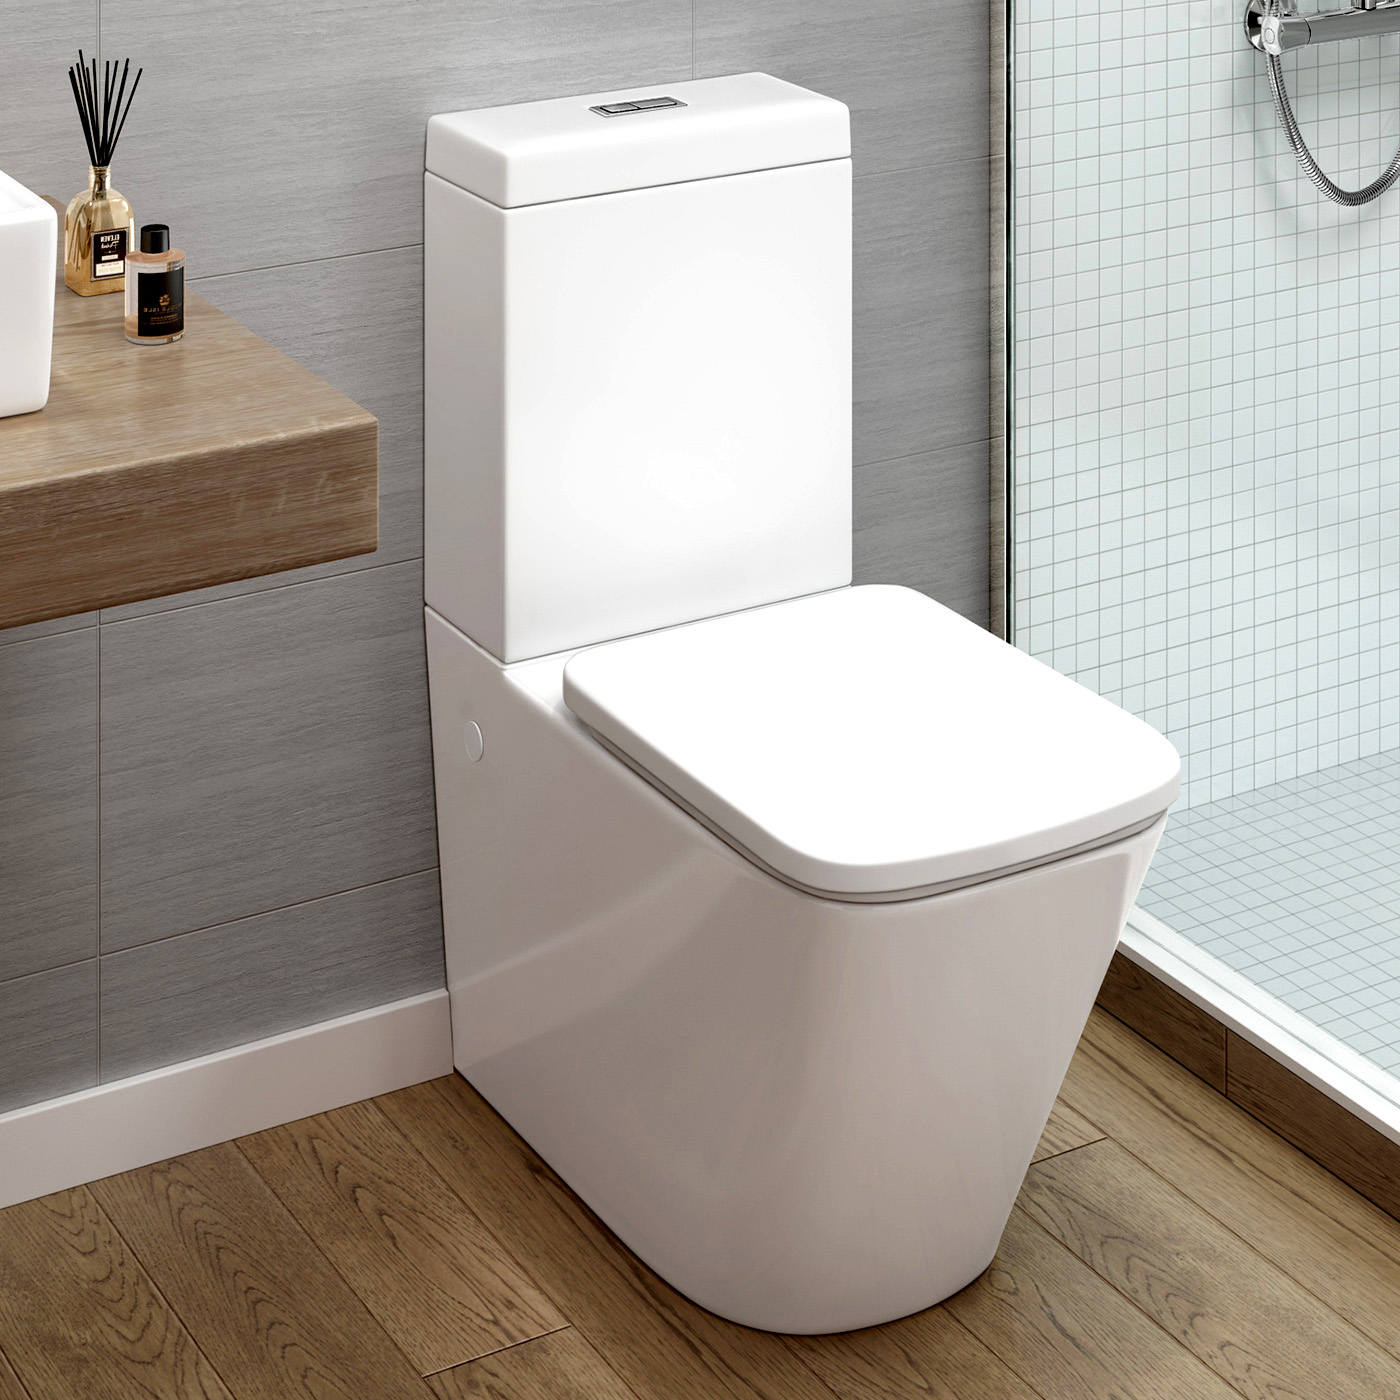 square toliet   brooklyn modern square toilet available at  - square toliet thinktaps modern square white close coupled toilet pan